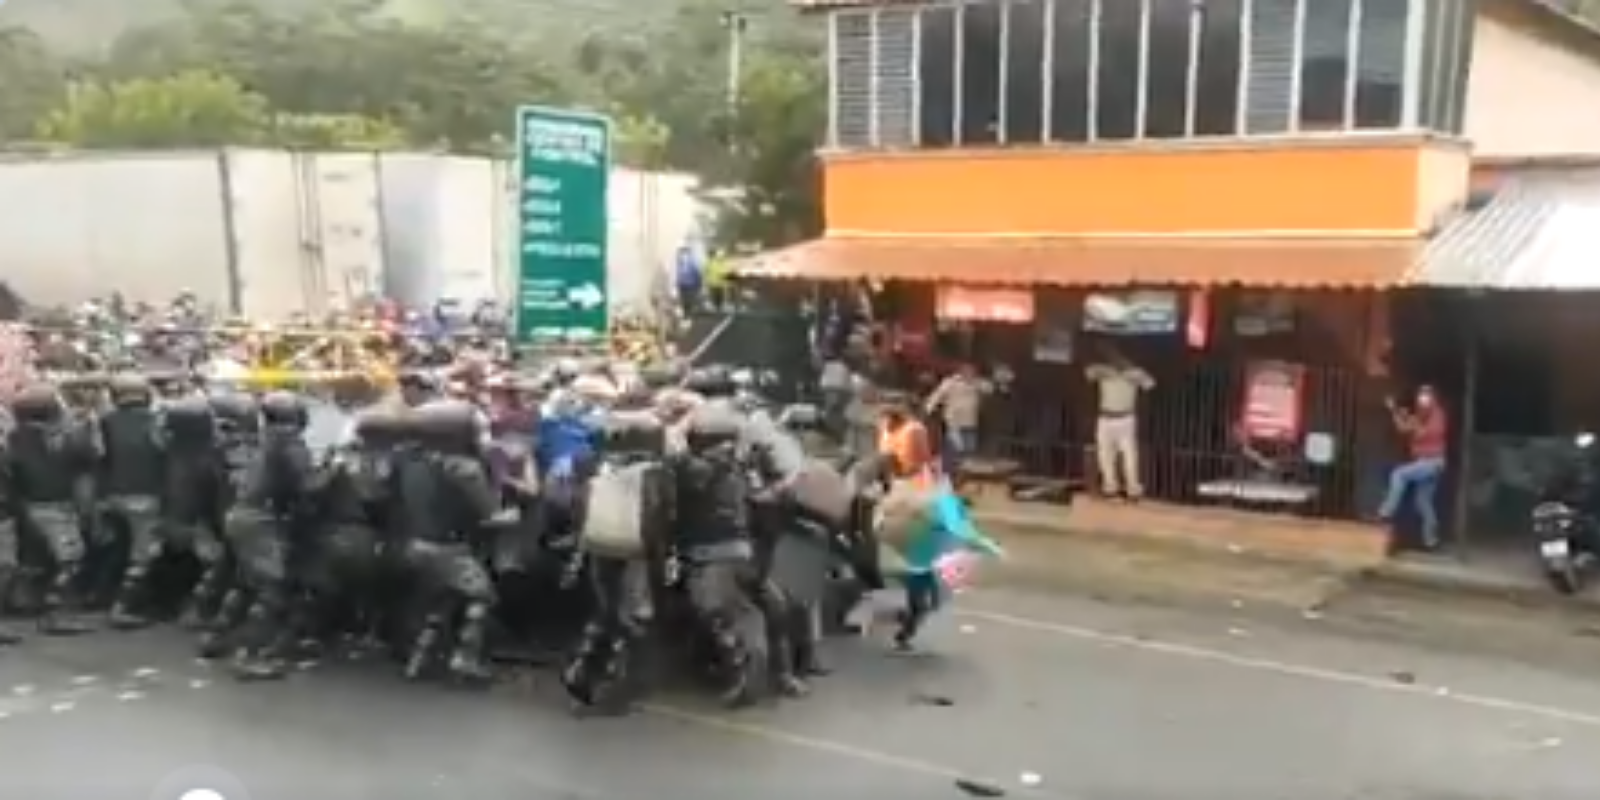 Guatemalan security forces fight newly-formed caravan headed for U.S. border